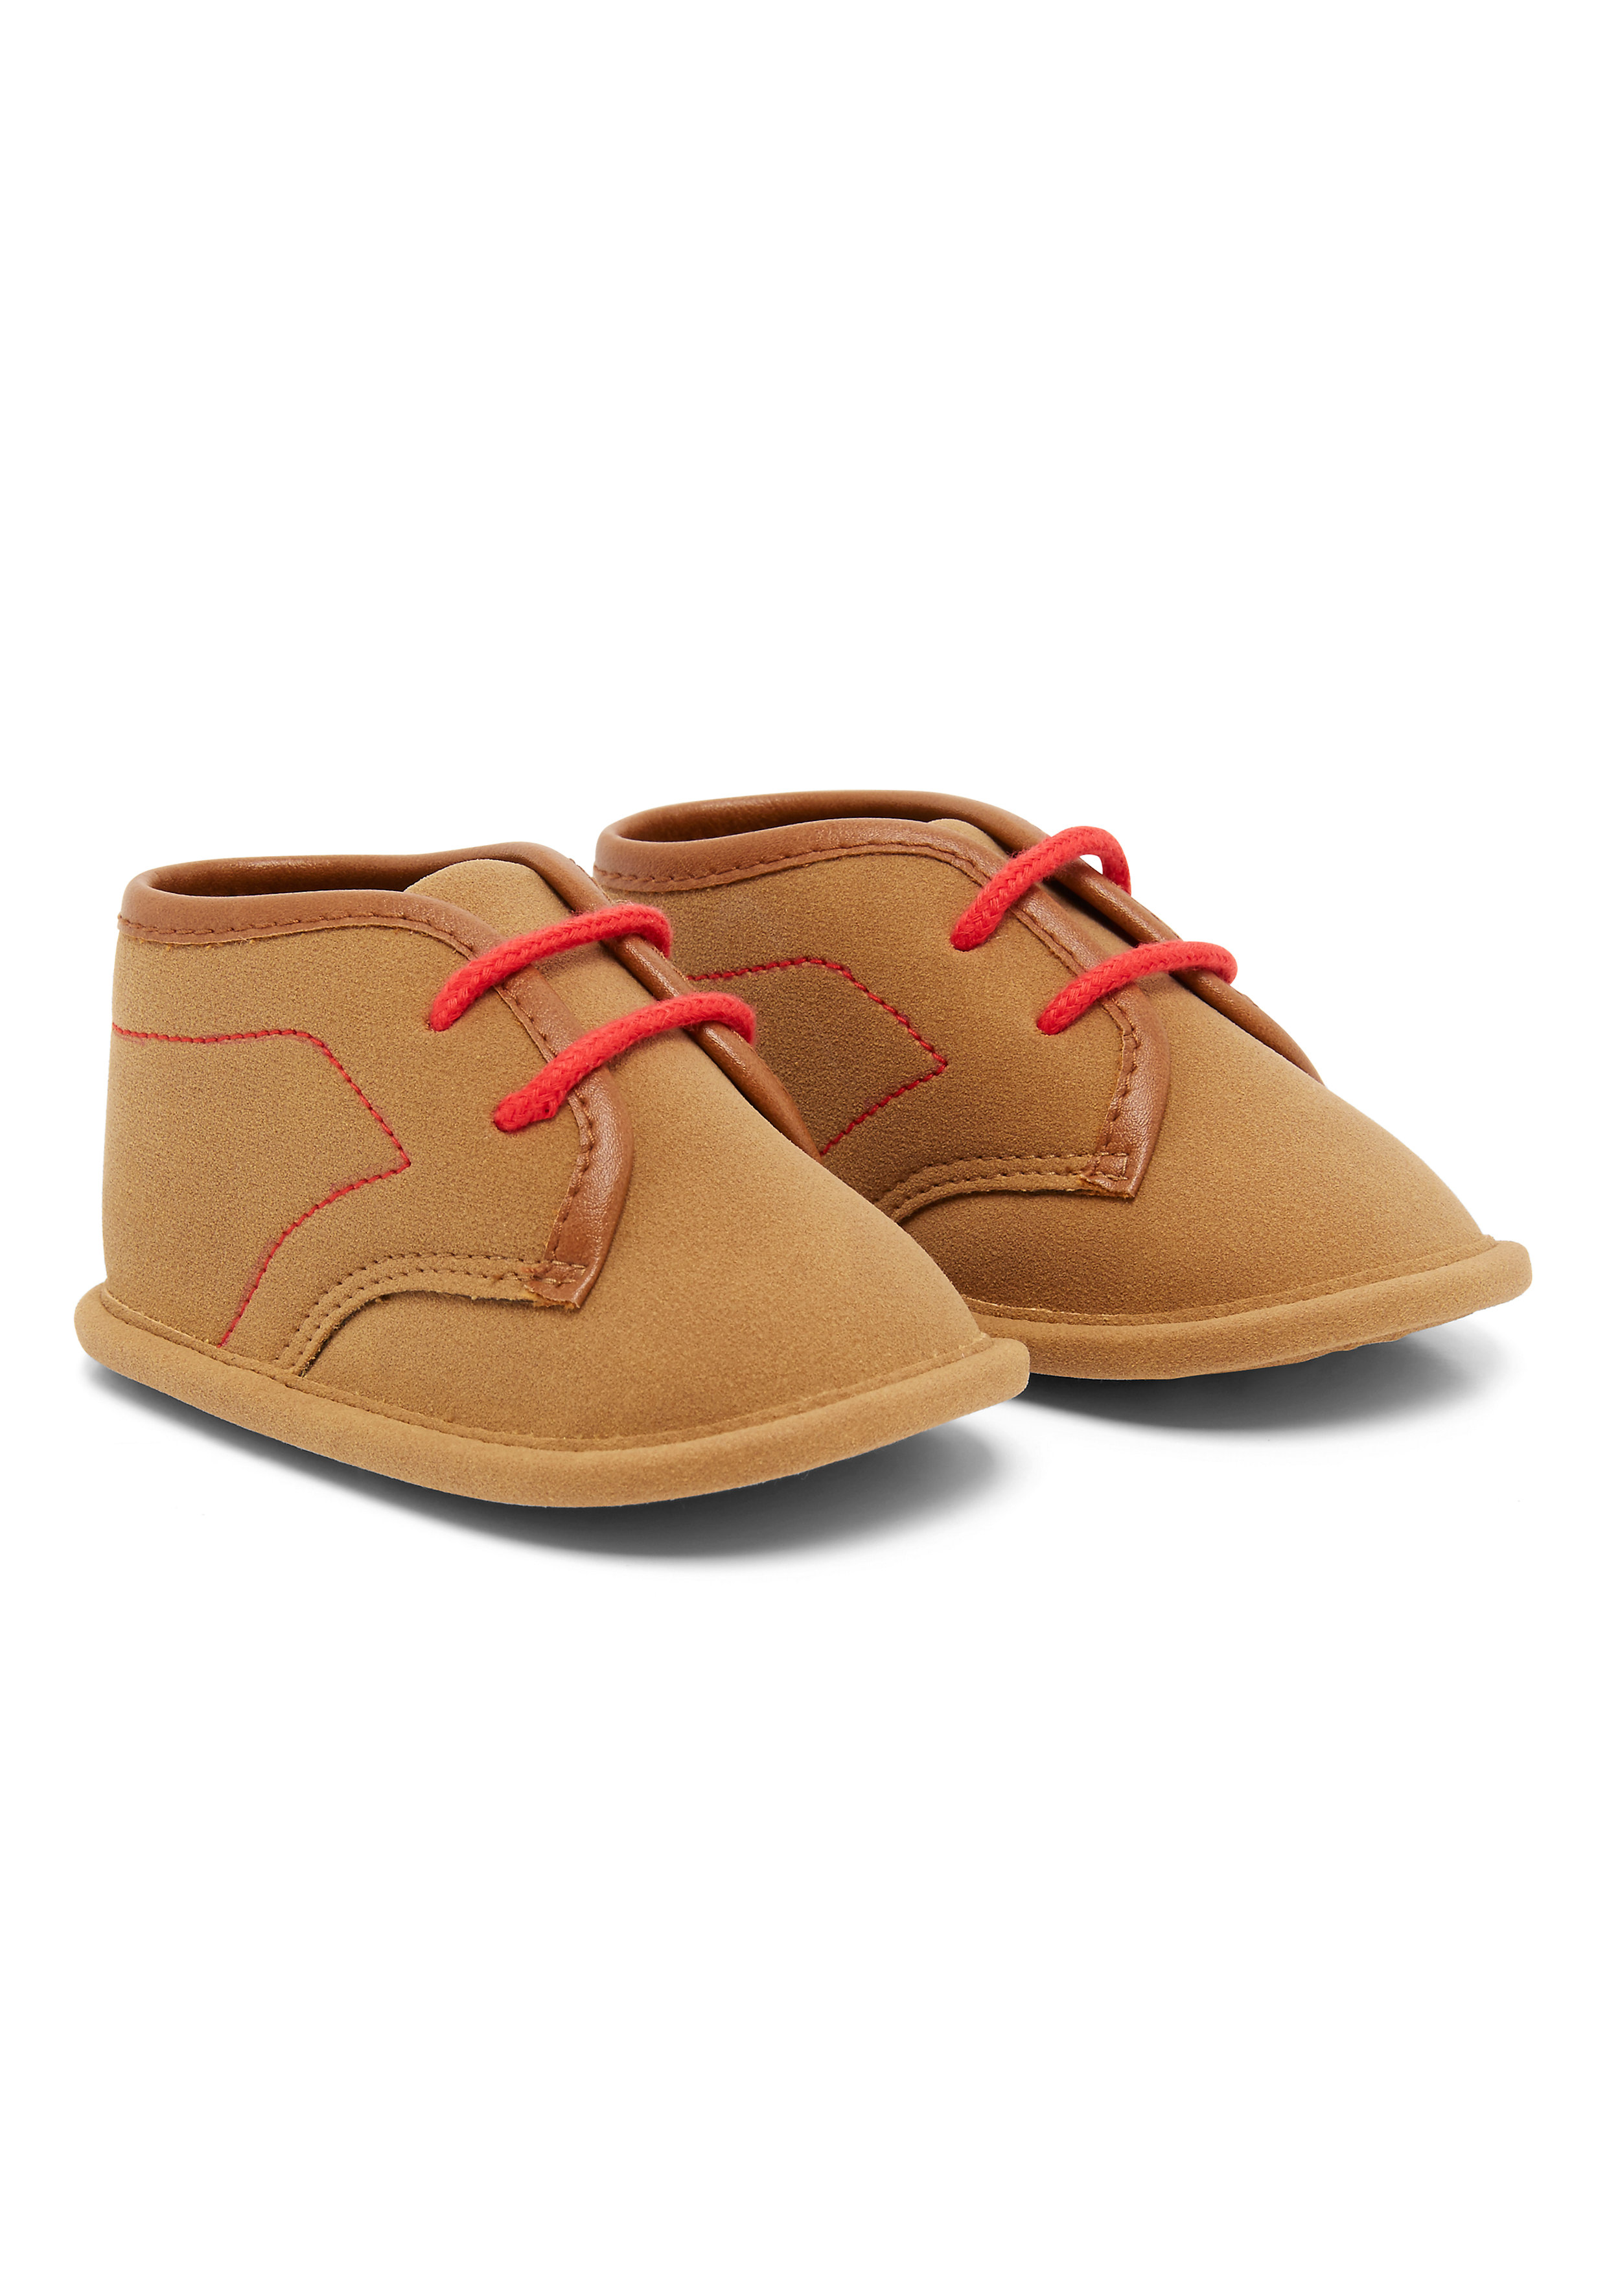 Mothercare | Boys Lace Up Boots - Brown